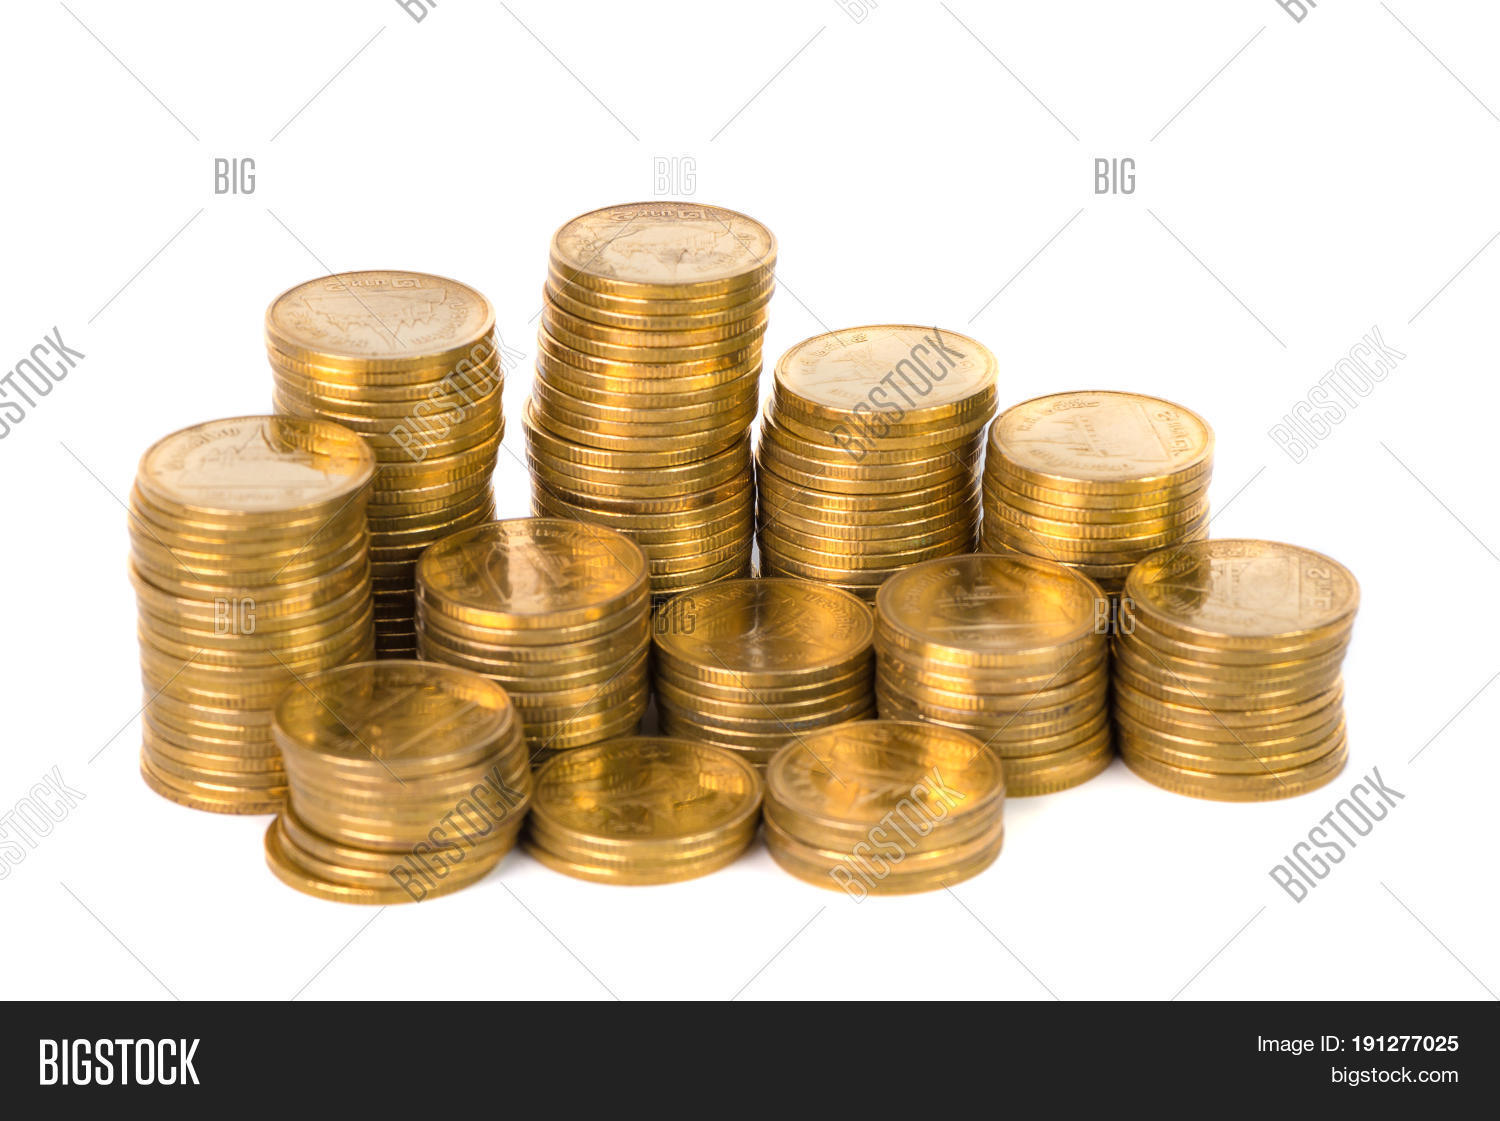 Columns Gold Coins Image Photo Free Trial Bigstock